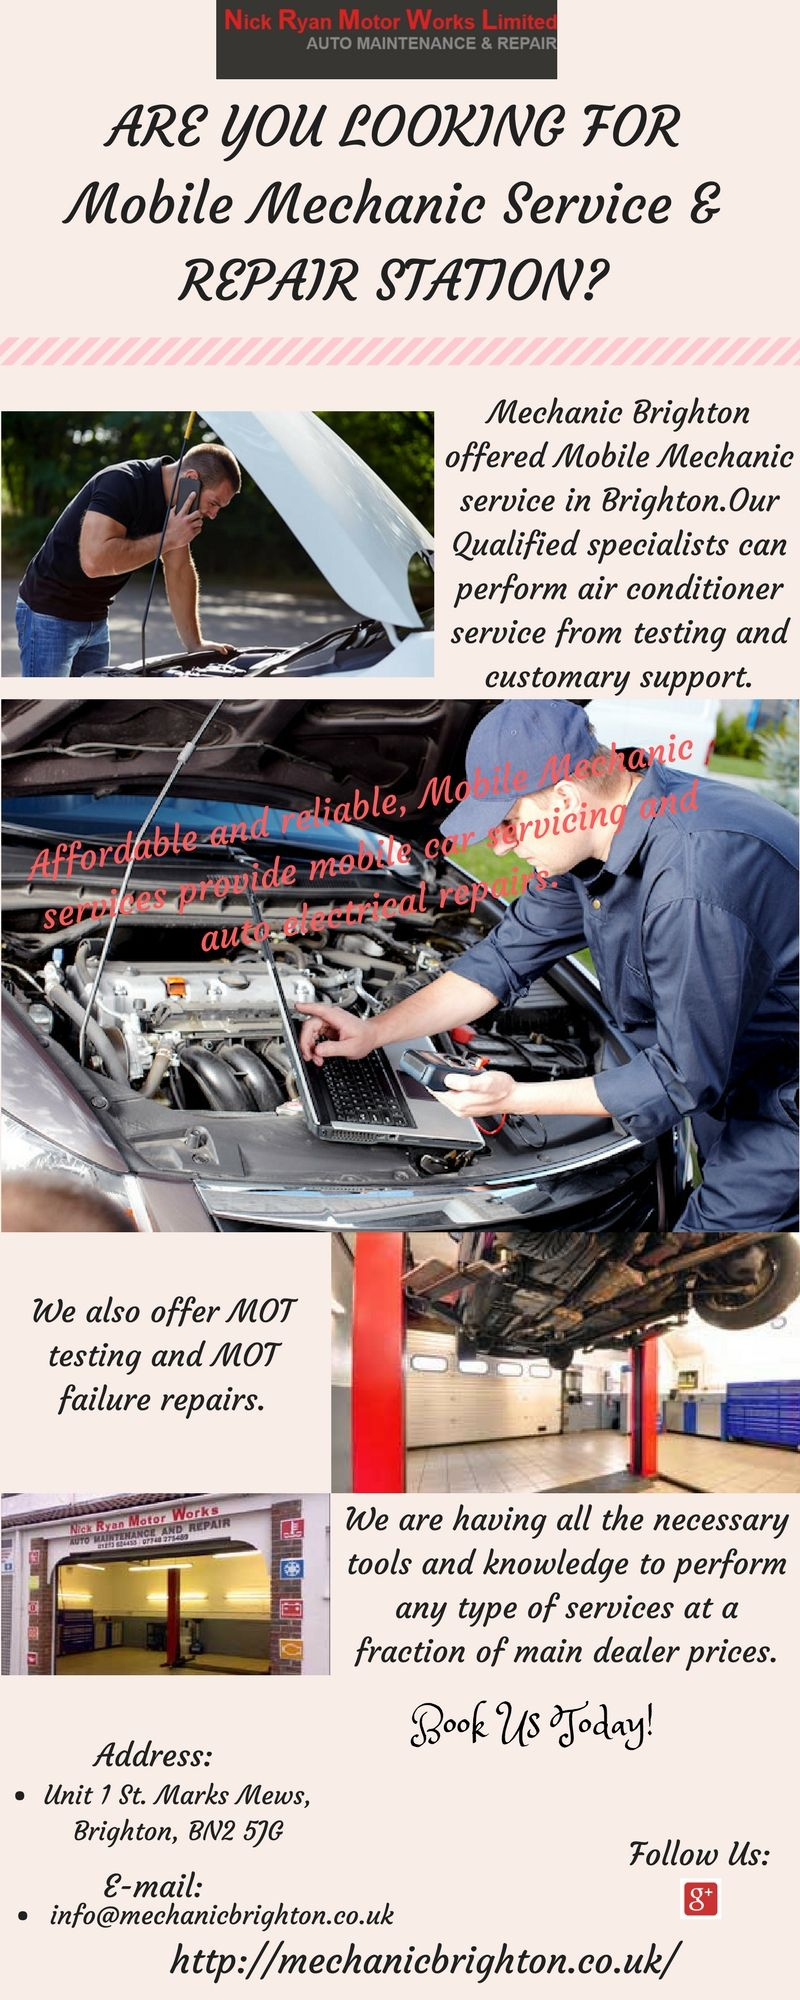 Find the best Mobile Mechanic Service near Bringhton at